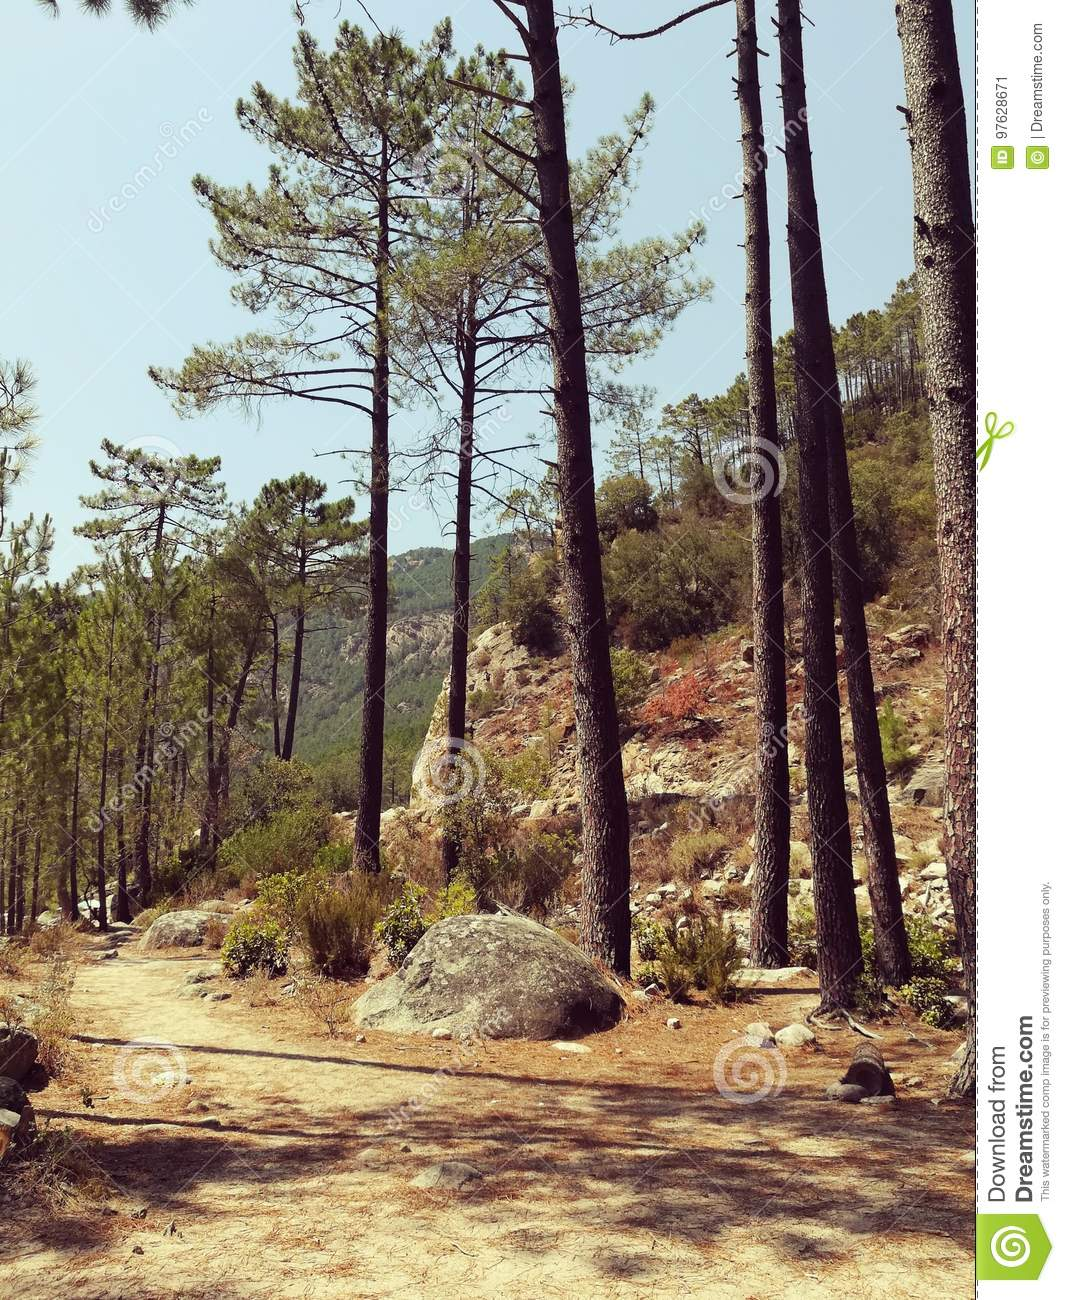 Download Tranquility in forest stock image. Image of tranquility - 97628671